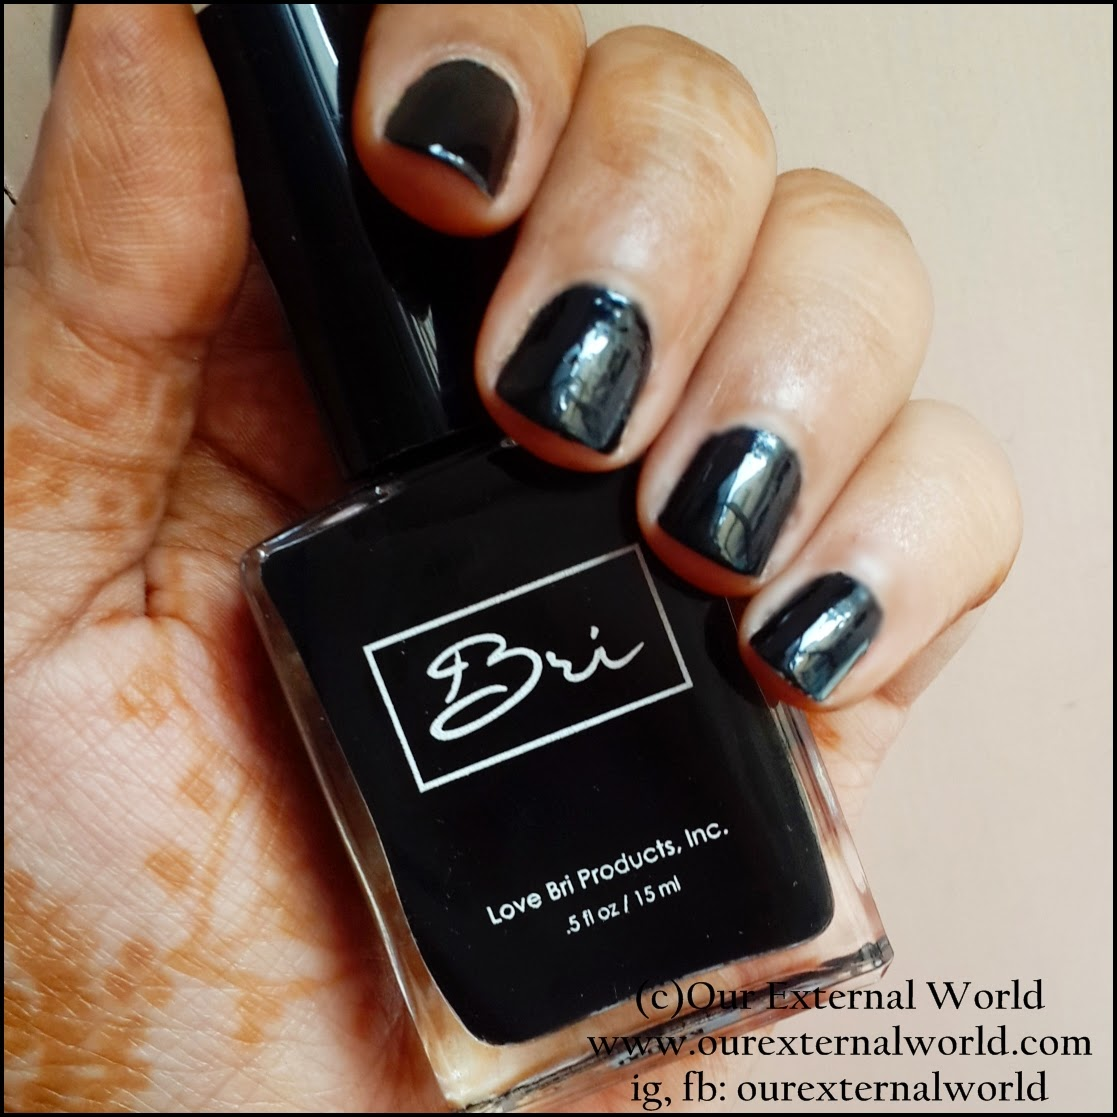 Review & Swatch: Love Bri Products Nail Polish #2 Midnight, black nail polish